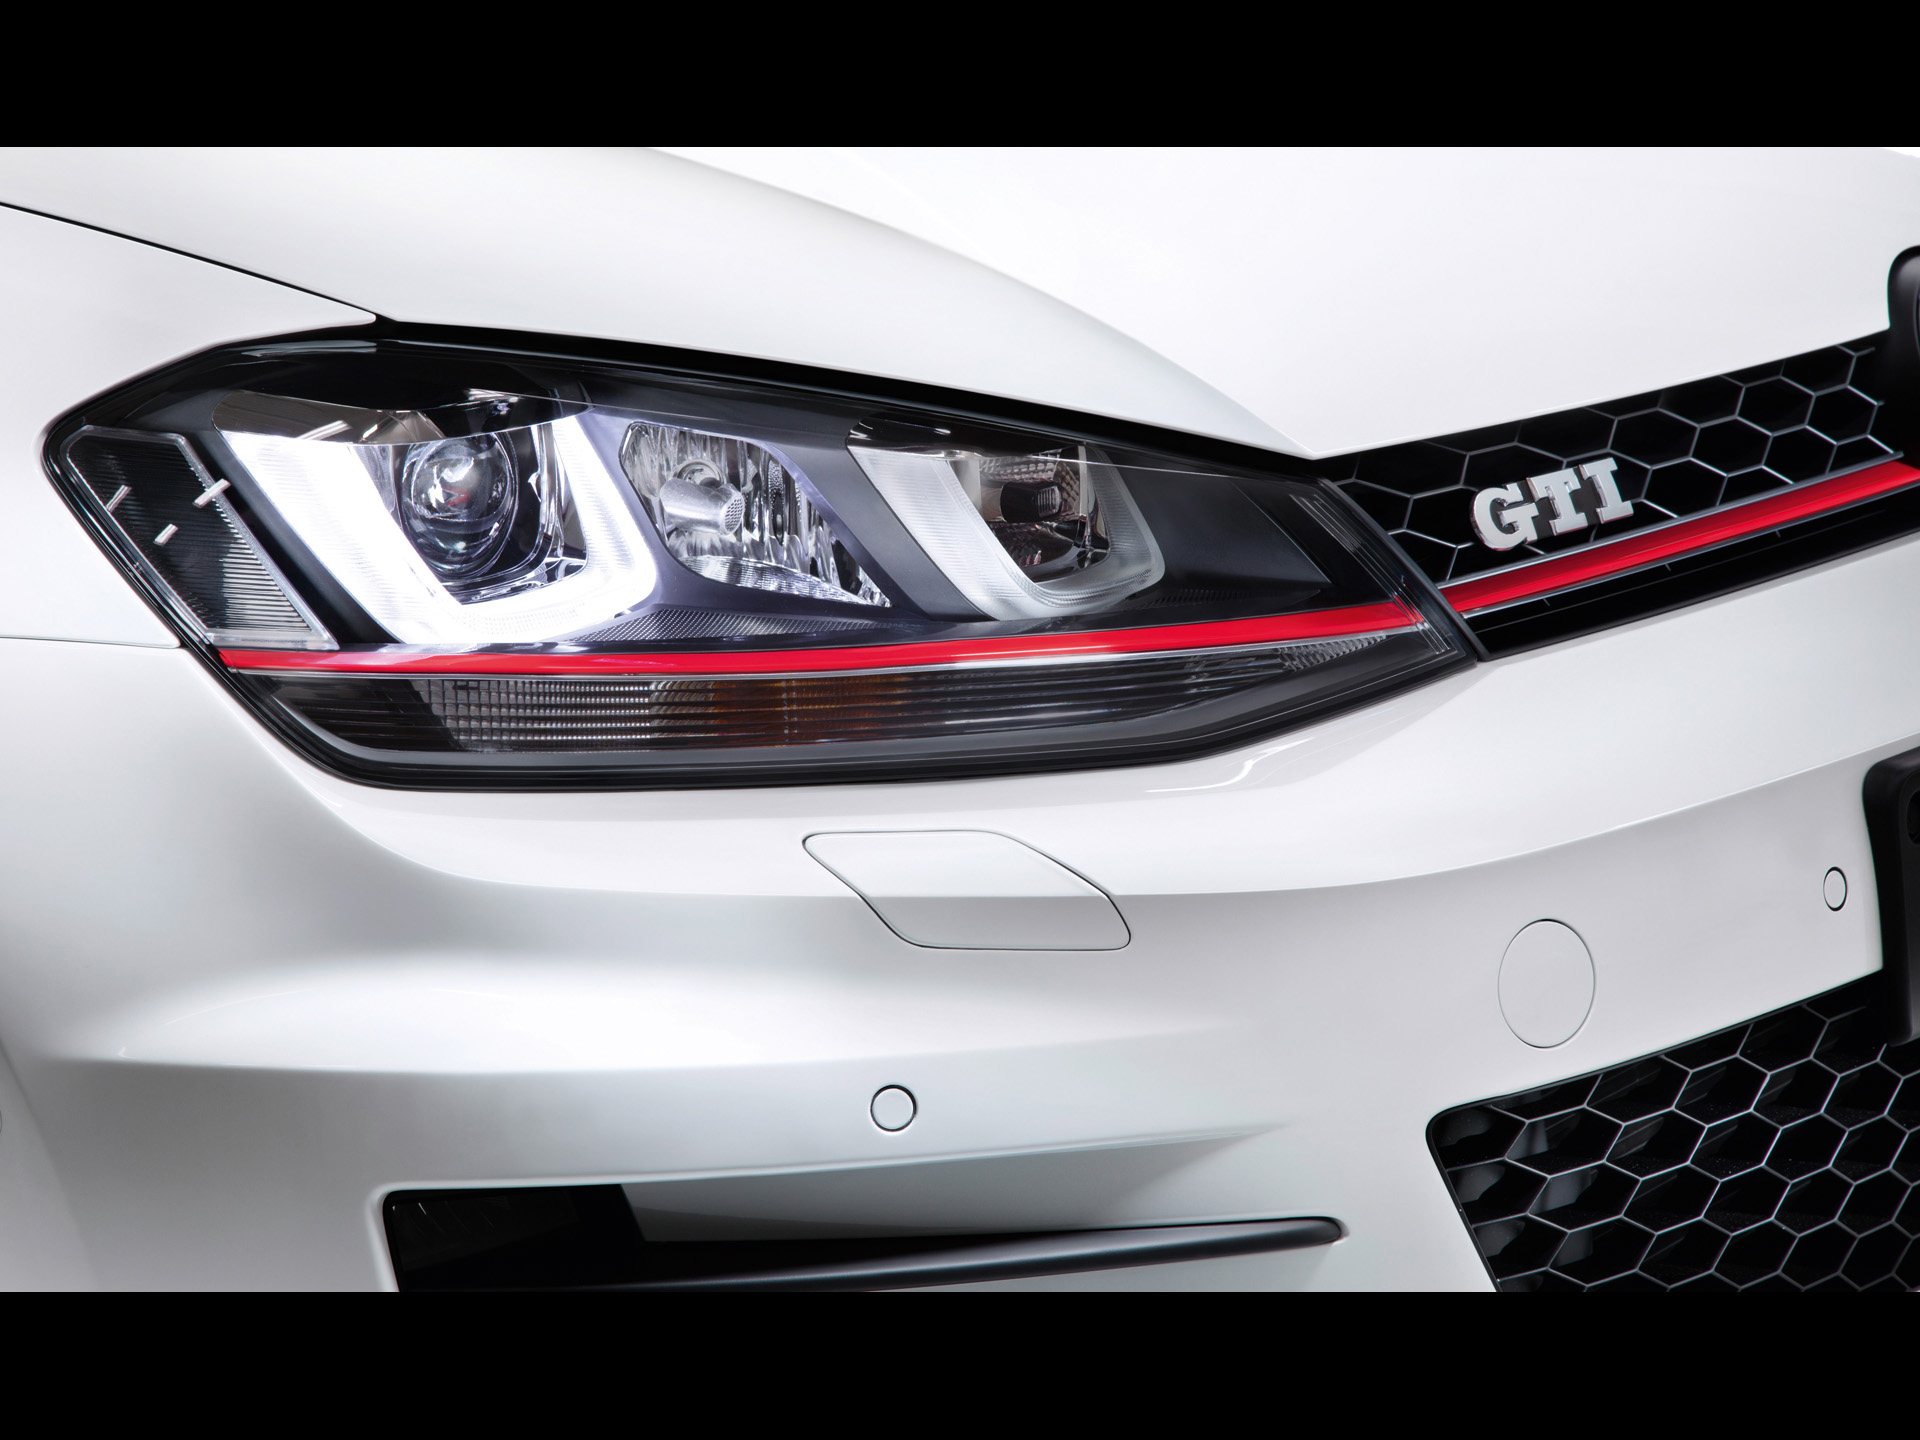 2012 Volkswagen Golf 7 Gti Concept Headlights Wallpapers